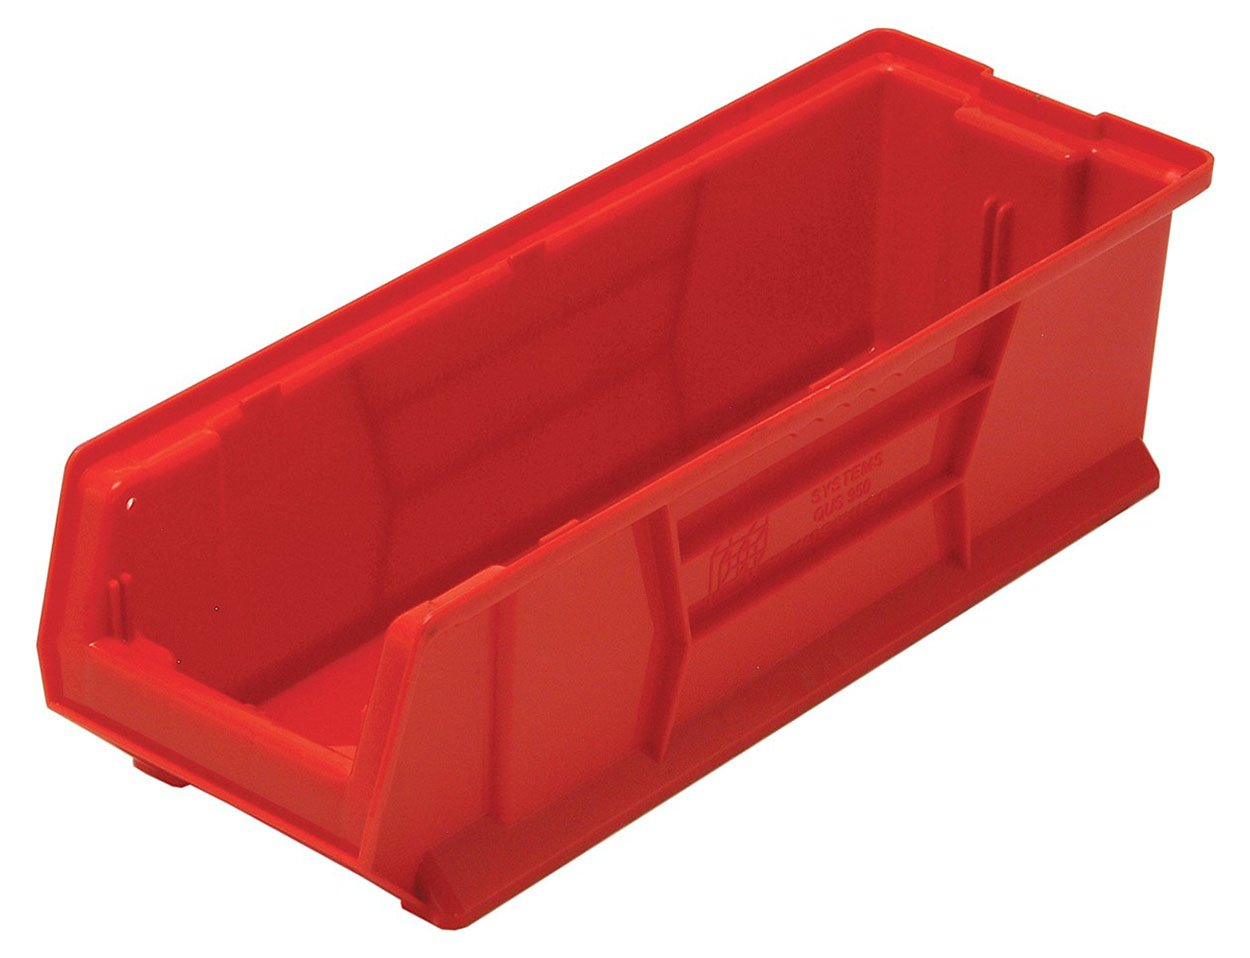 Quantum QUS950 Plastic Storage Stacking Hulk Container, 24-Inch by 8-Inch by 7-Inch, Red, Case of 6